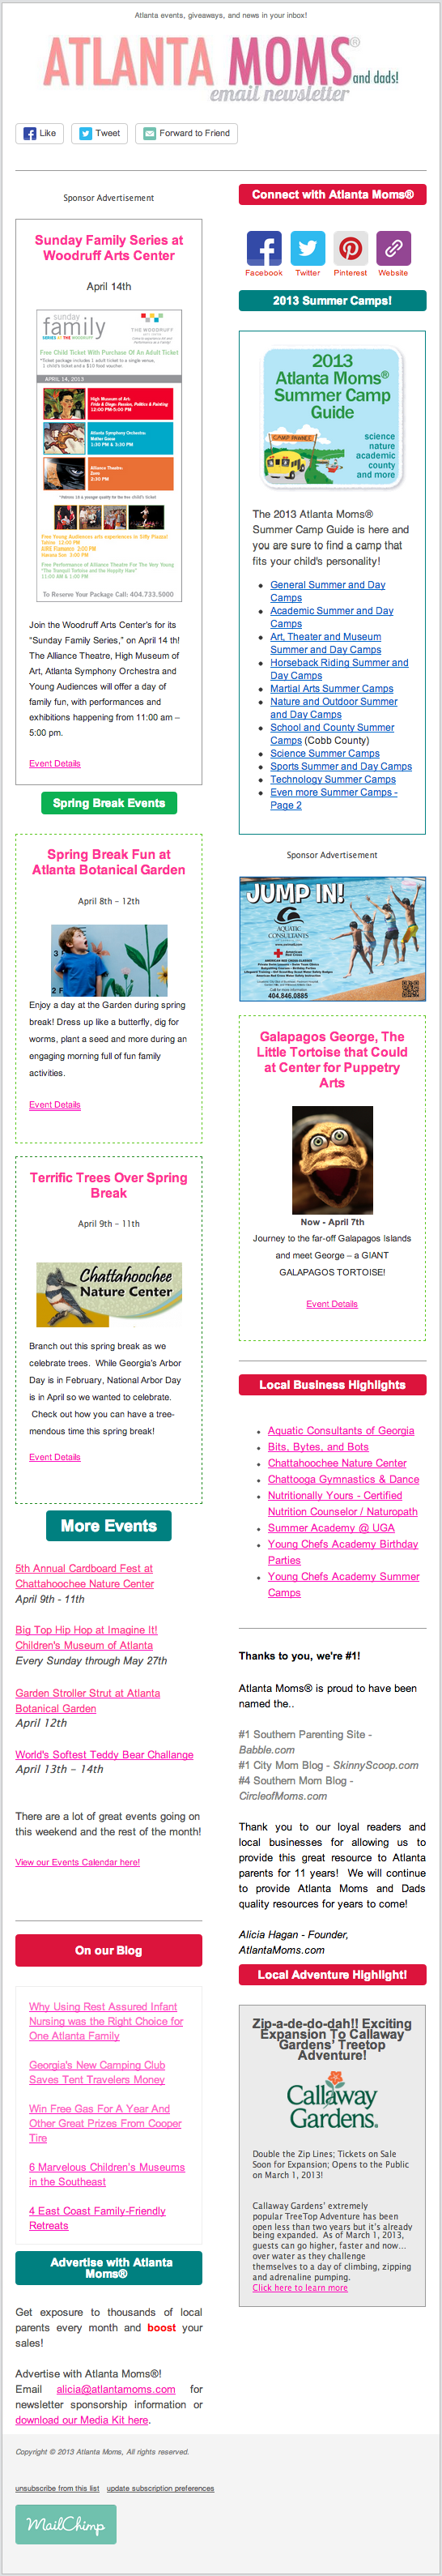 Atlanta Moms Weekly Newsletter - Sample